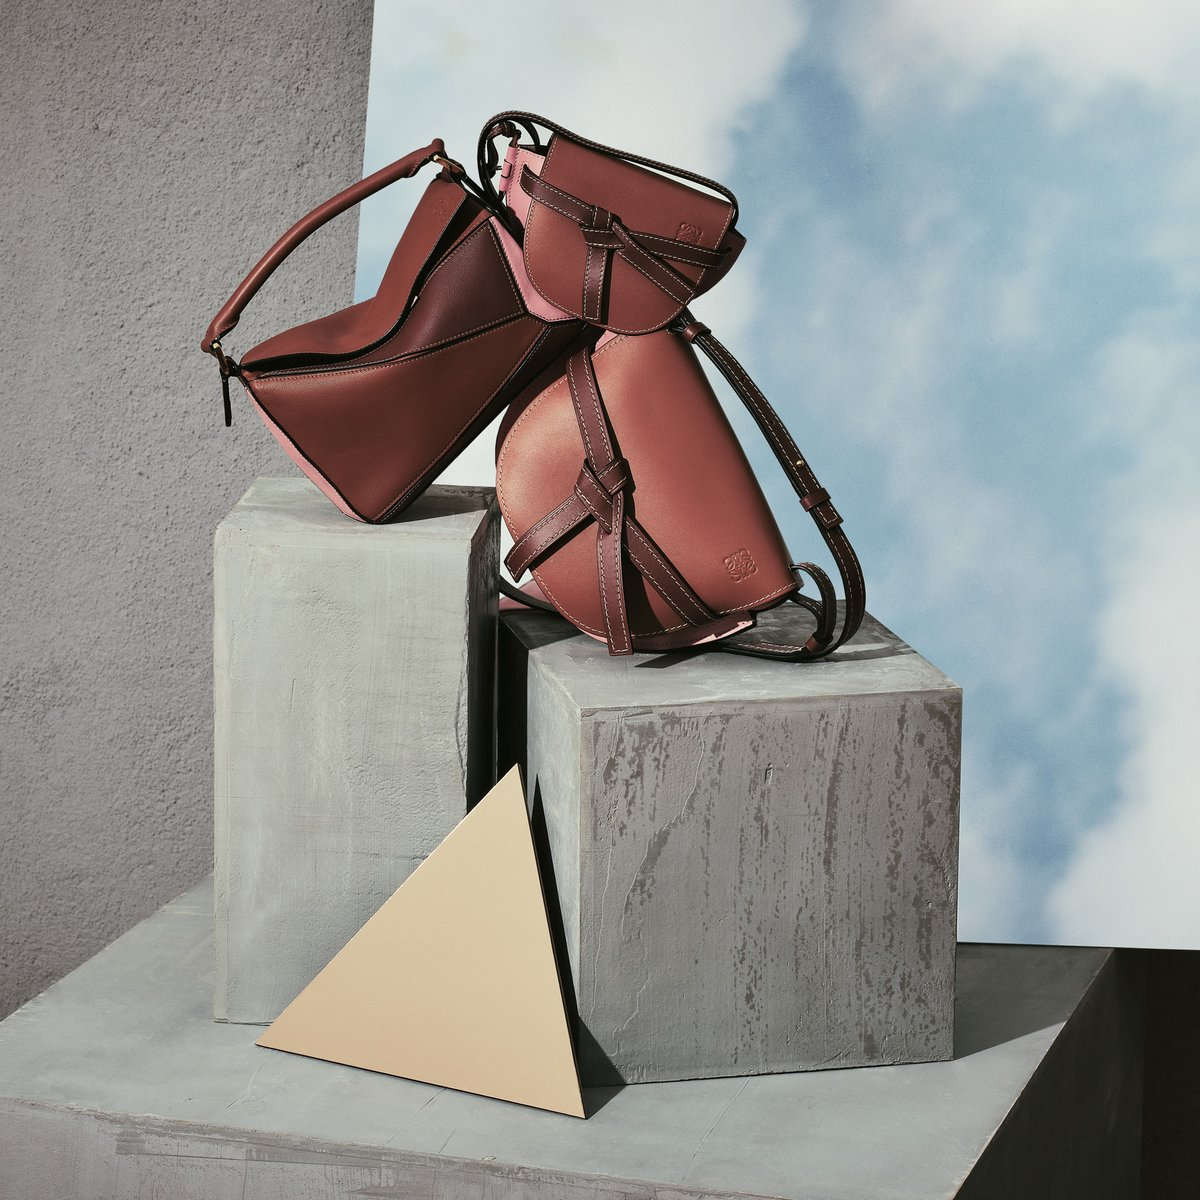 The Puzzle and Gate bags are iconic shapes in the #LOEWE bag family. See the collection on loewe.cm/PuzzleBag #LOEWE